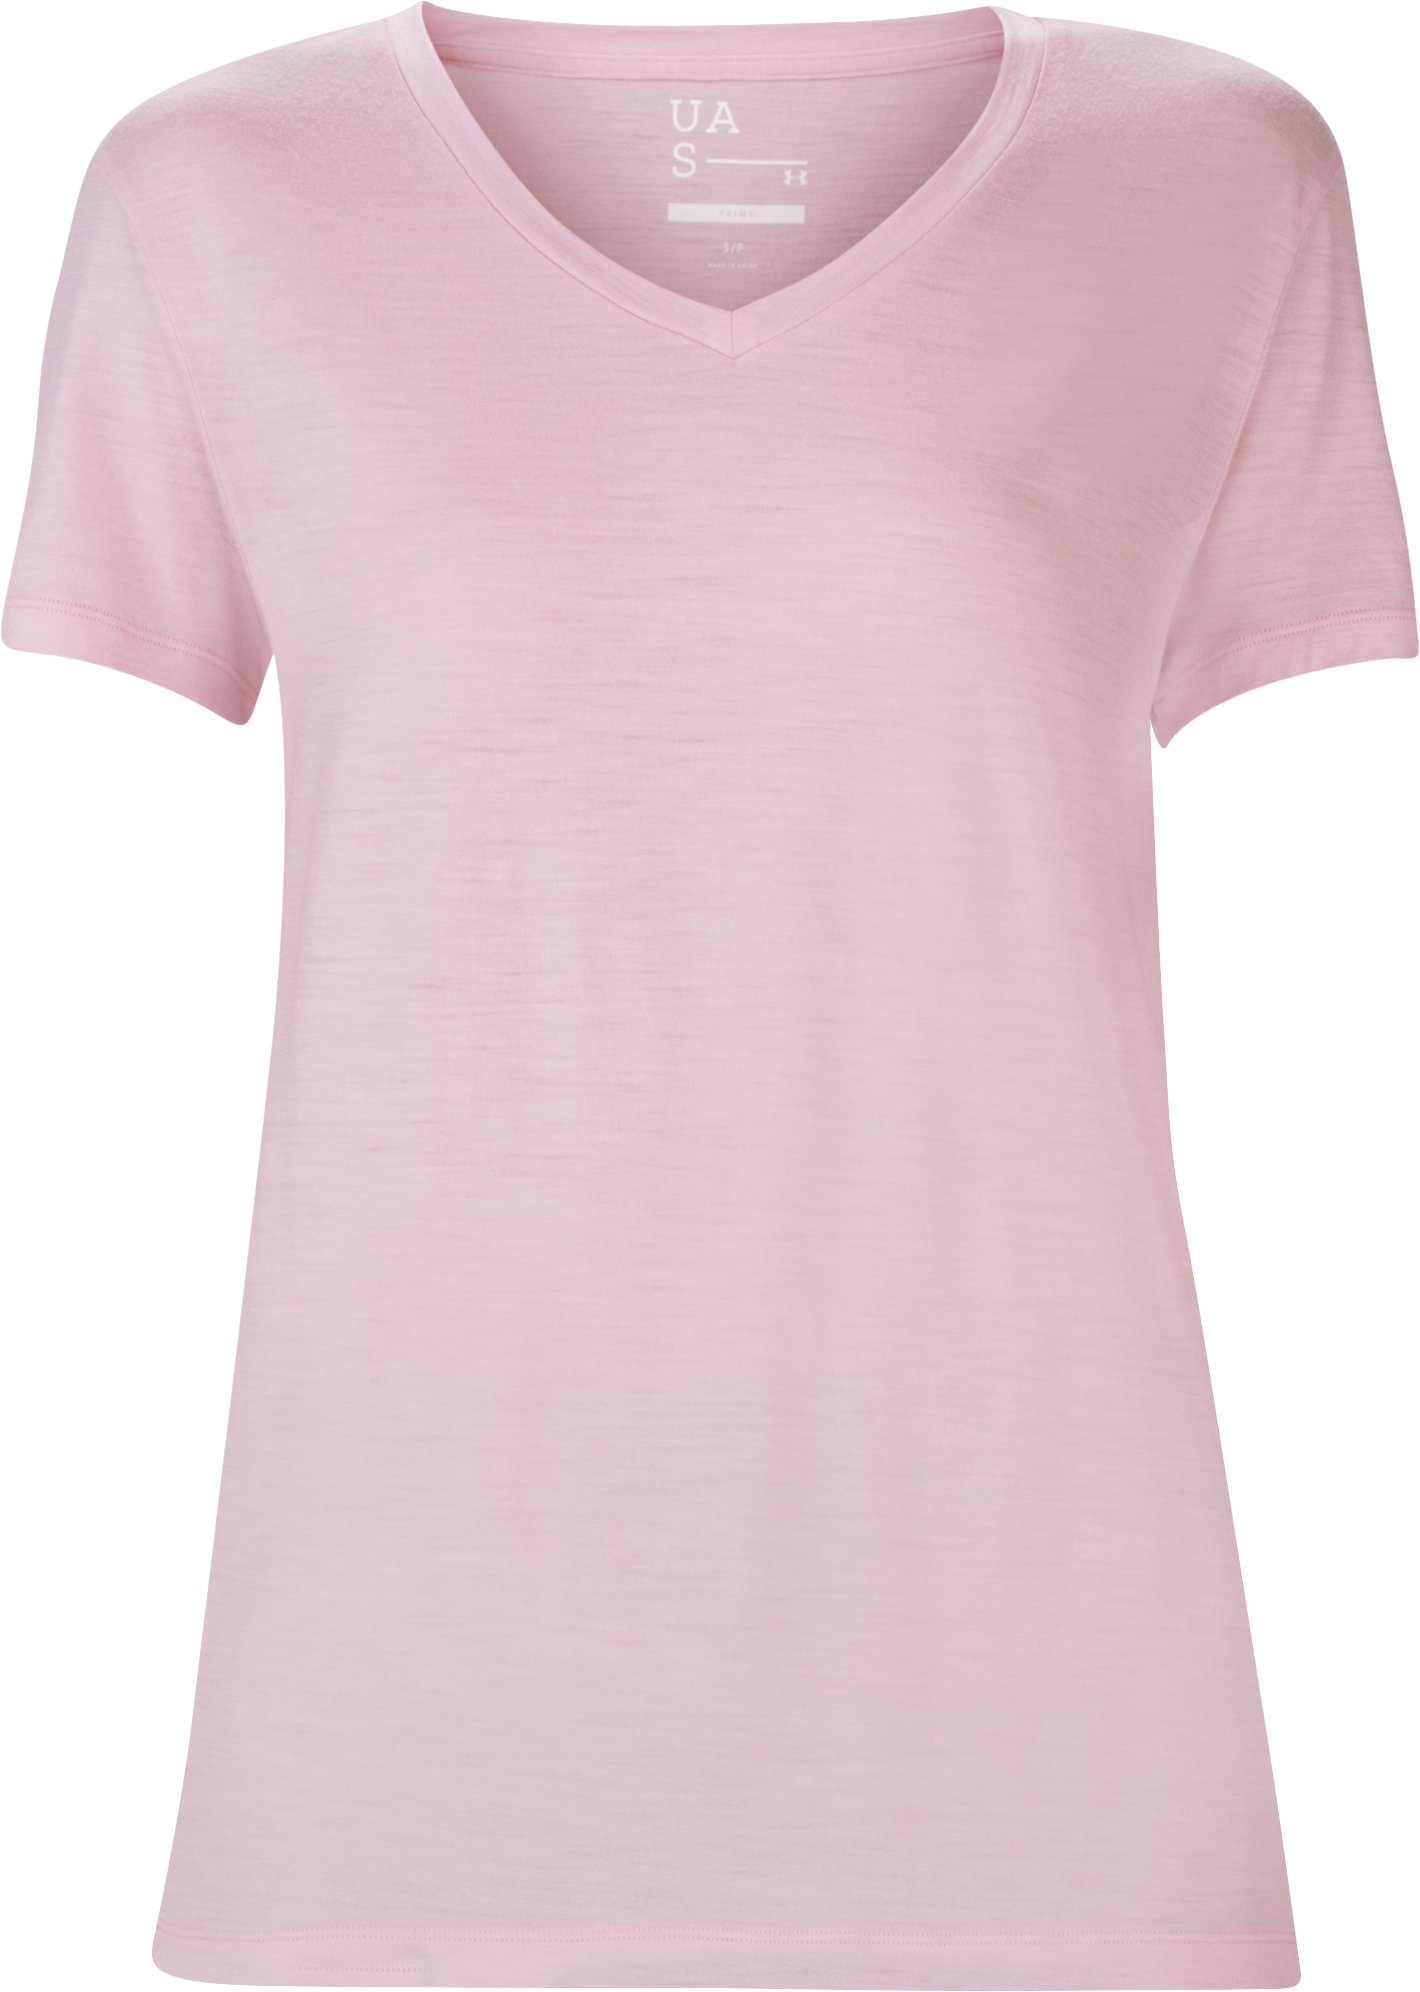 Women's UAS Prime Short Sleeve V-Neck, Pink, undefined